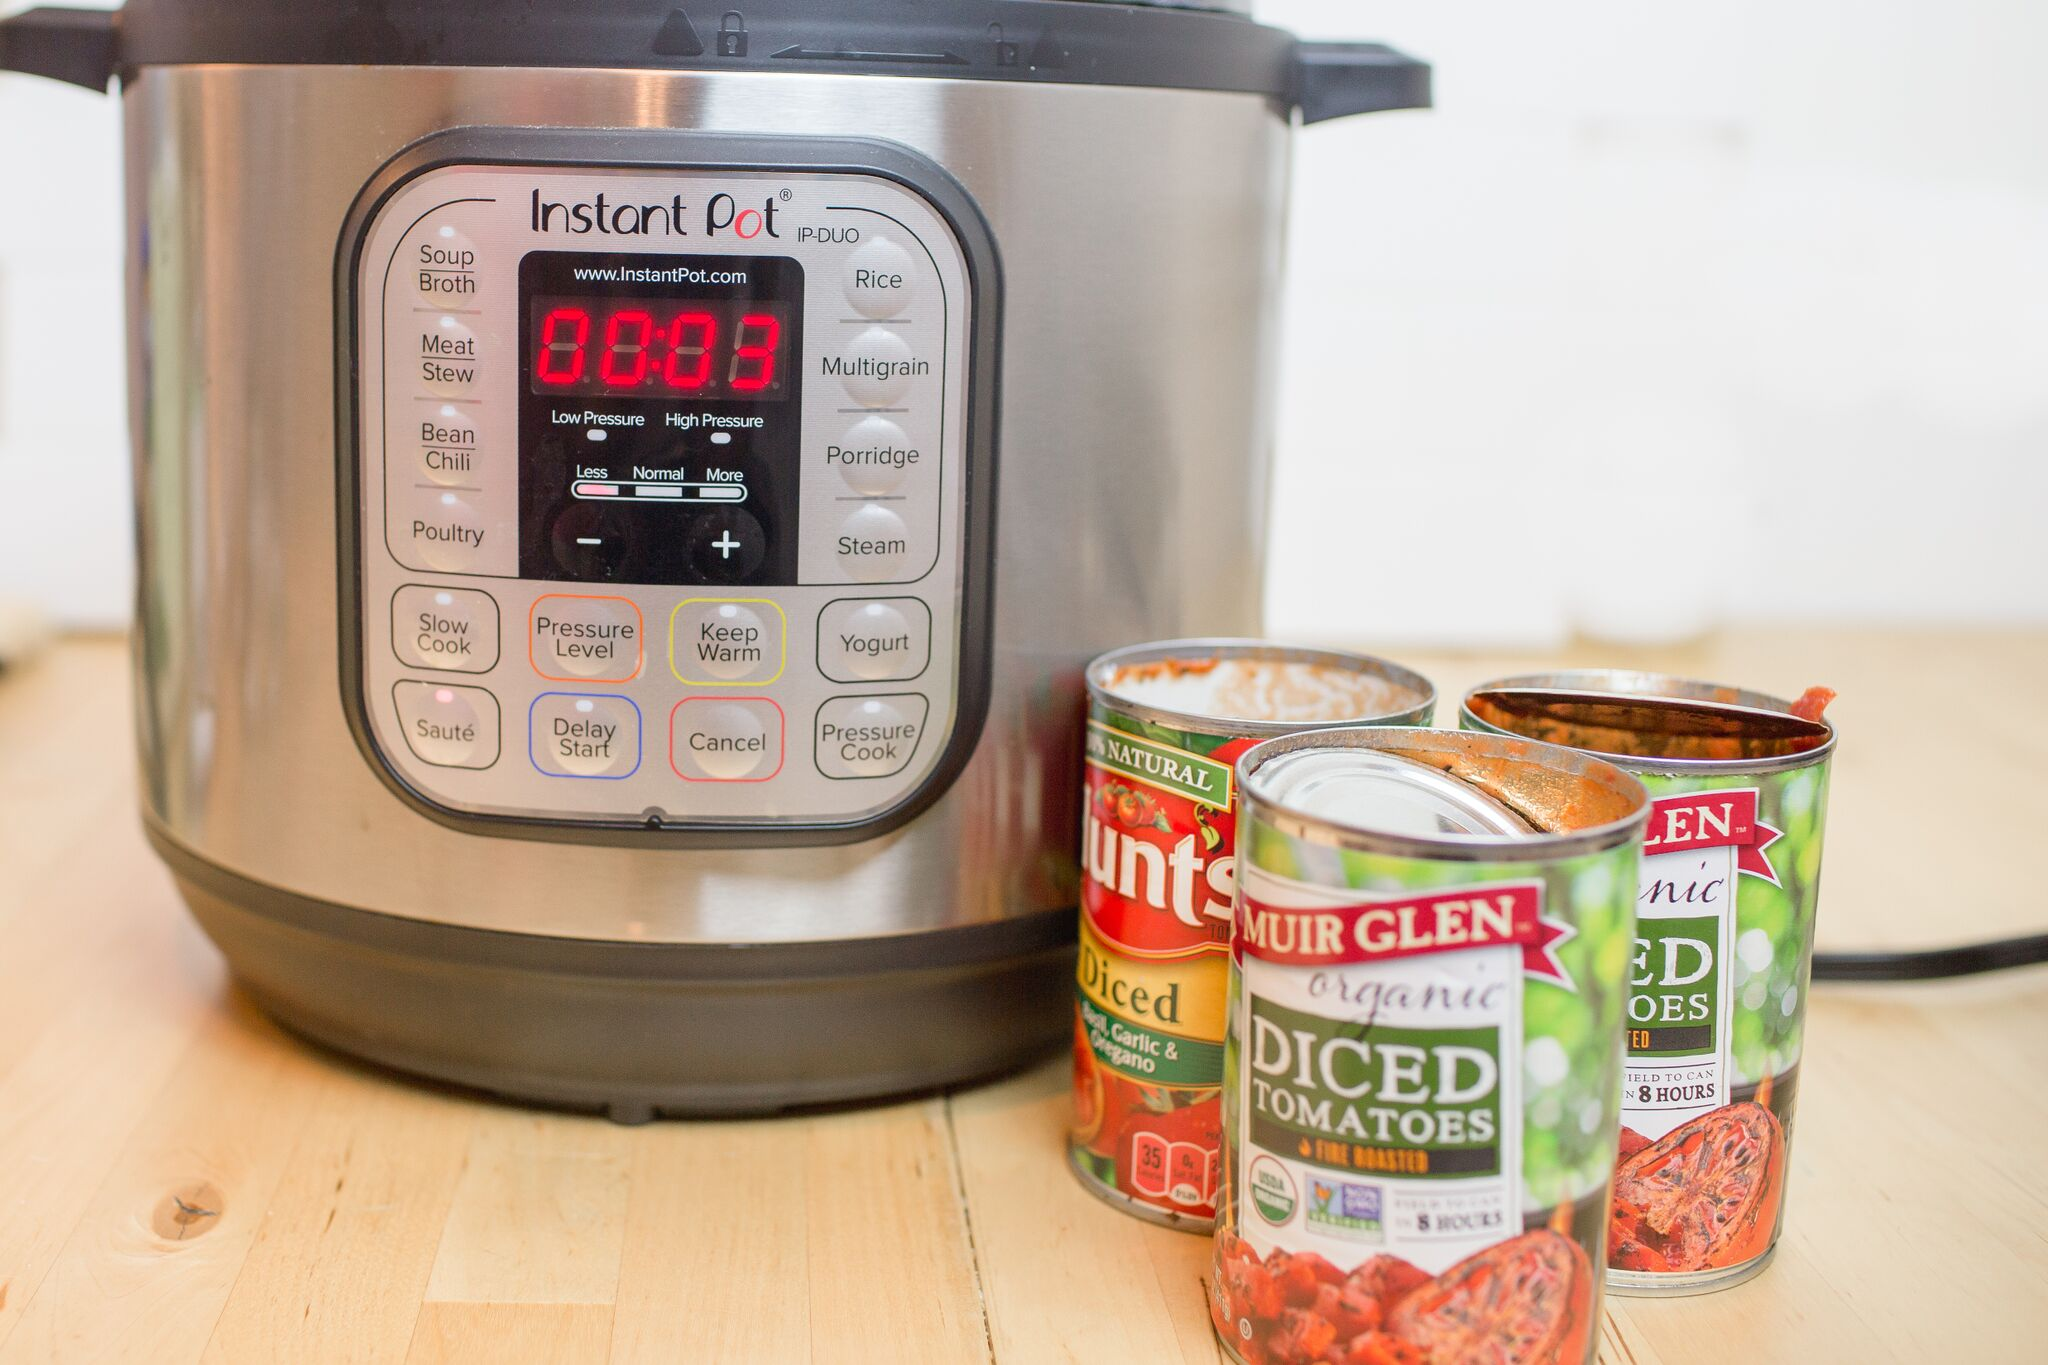 add sauce-Looking for a hearty meal that the whole family will love? This Lasagna Soup recipe tastes great, uses simple, easy-to-find ingredients, and can be made in an hour or less! Did we mention it's a perfect recipe for the Instant Pot too?